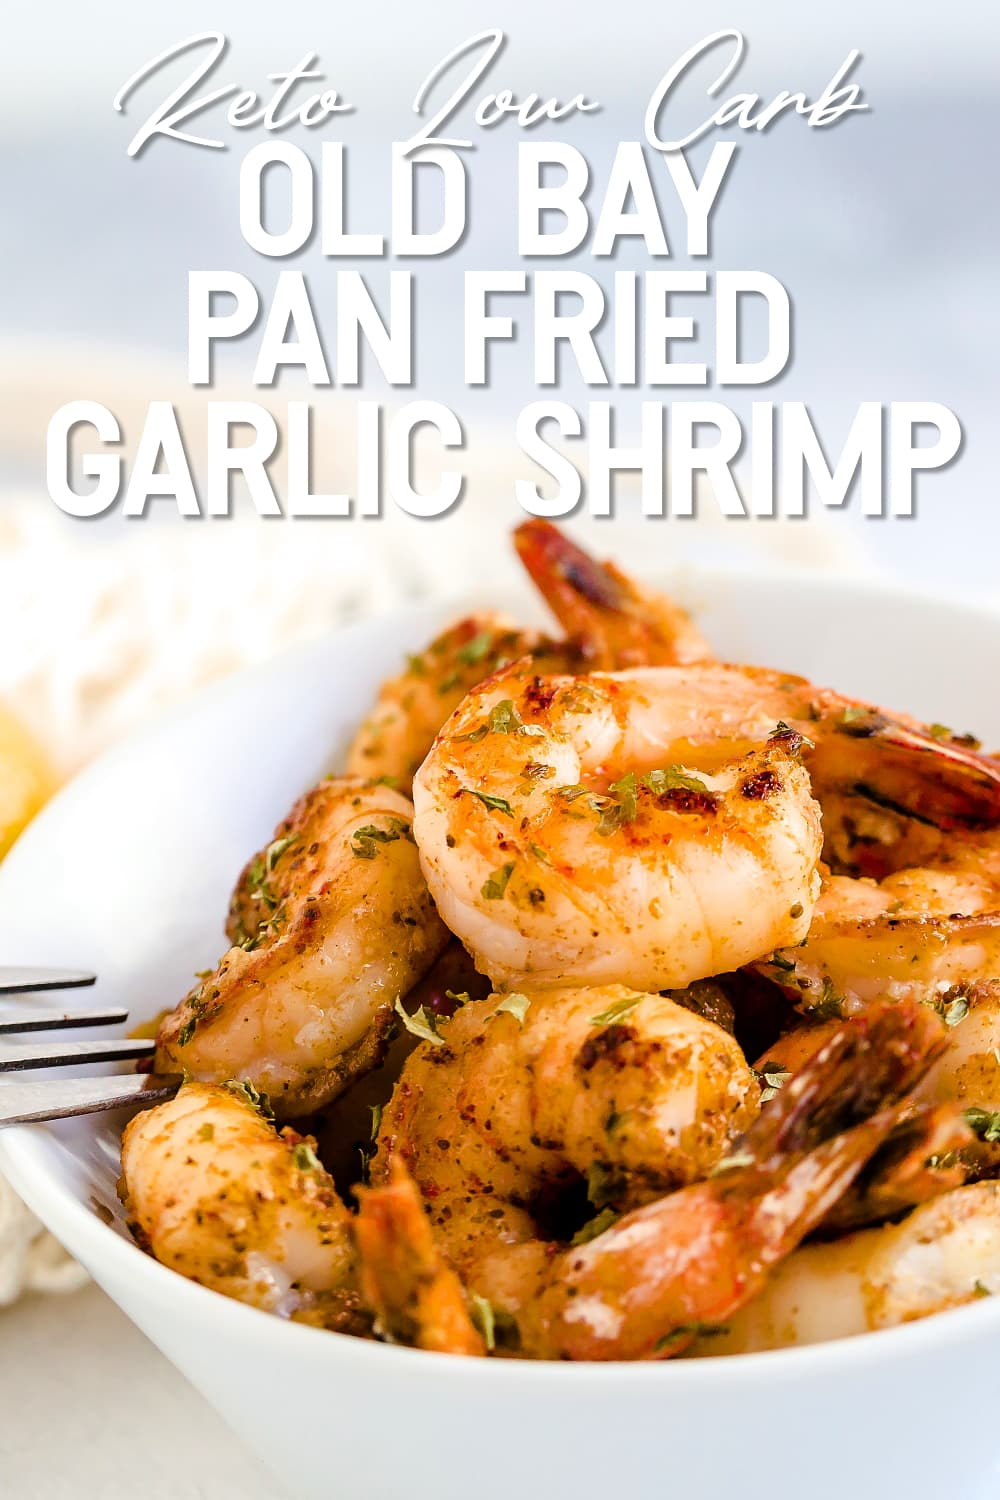 Old Bay Pan Fried Garlic Shrimp being picked up by a fork